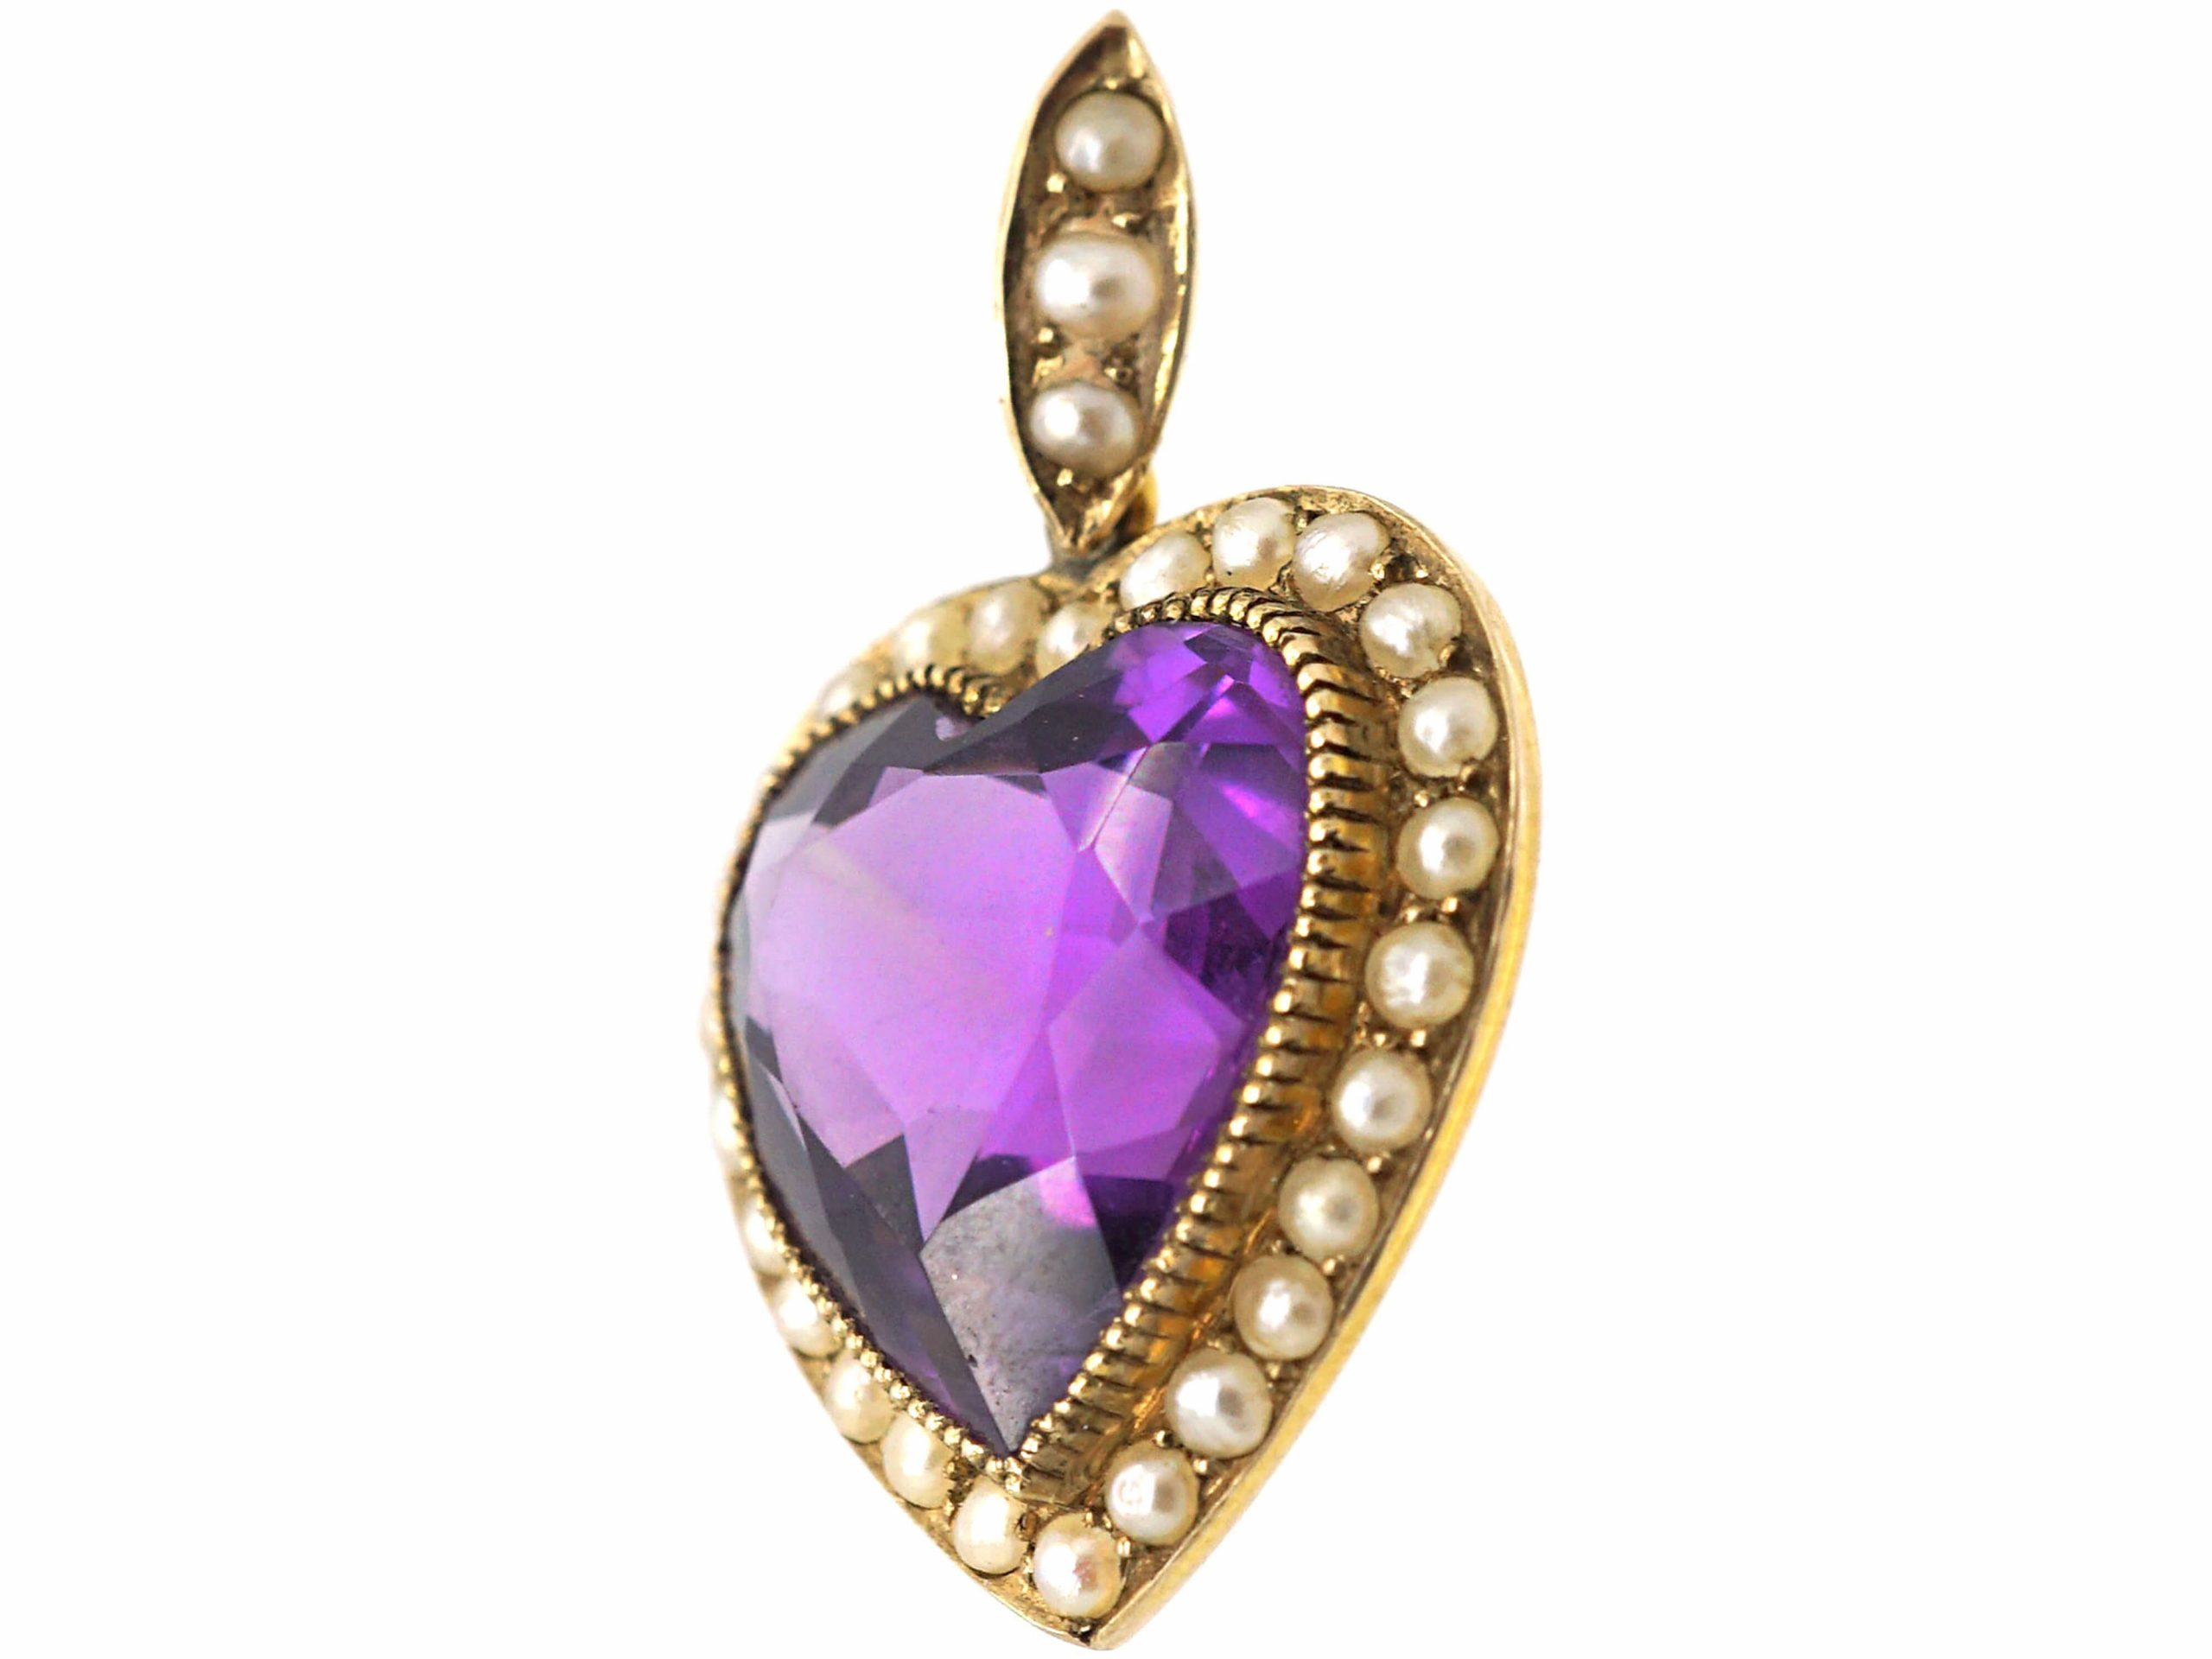 Edwardian 15ct Gold Heart set with a Heart Shaped Amethyst & Natural Split Pearls